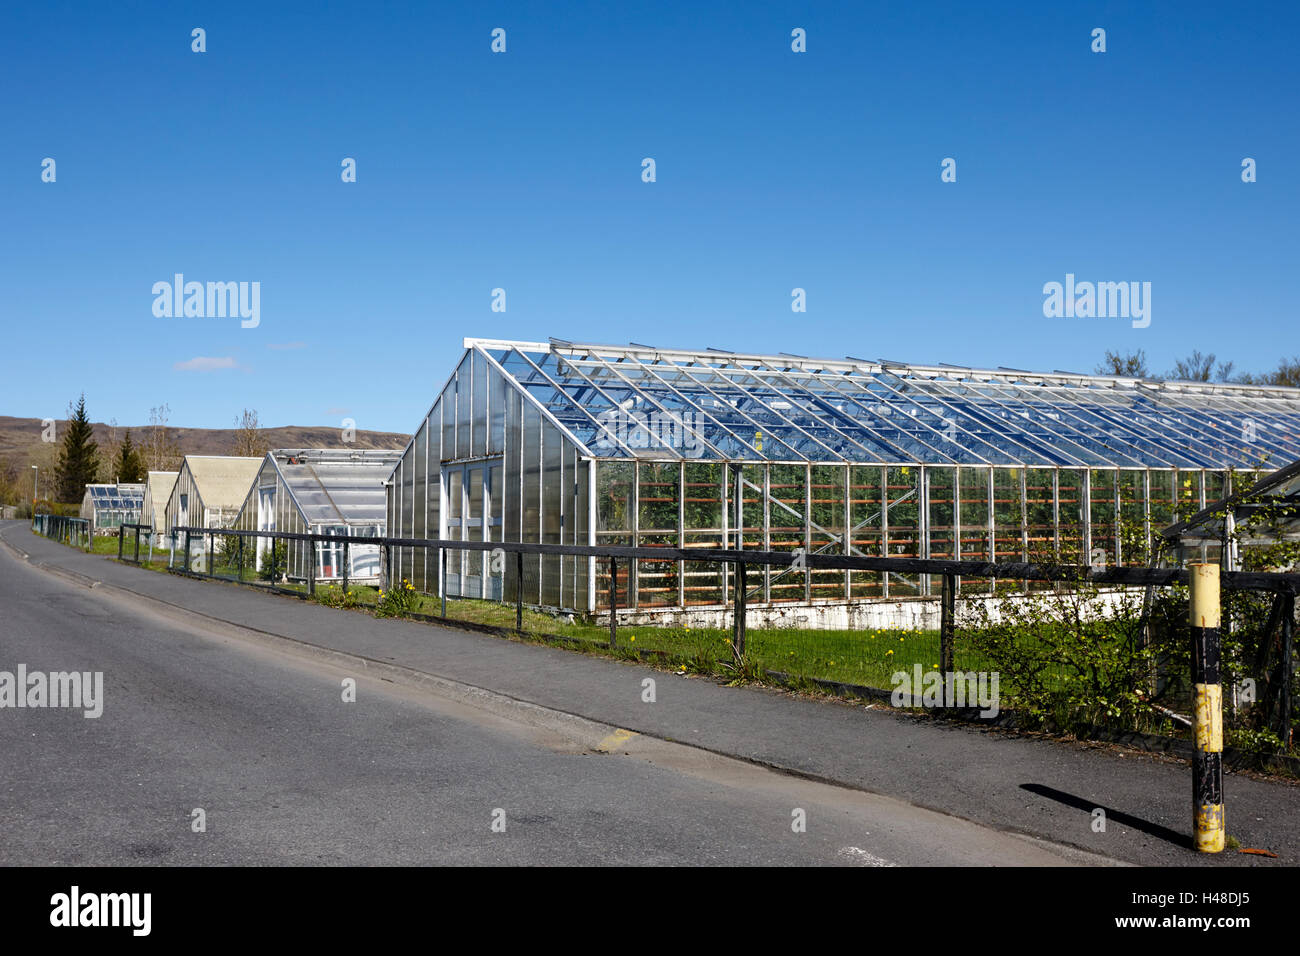 geothermally powered greenhouses in hveragerdi Iceland - Stock Image